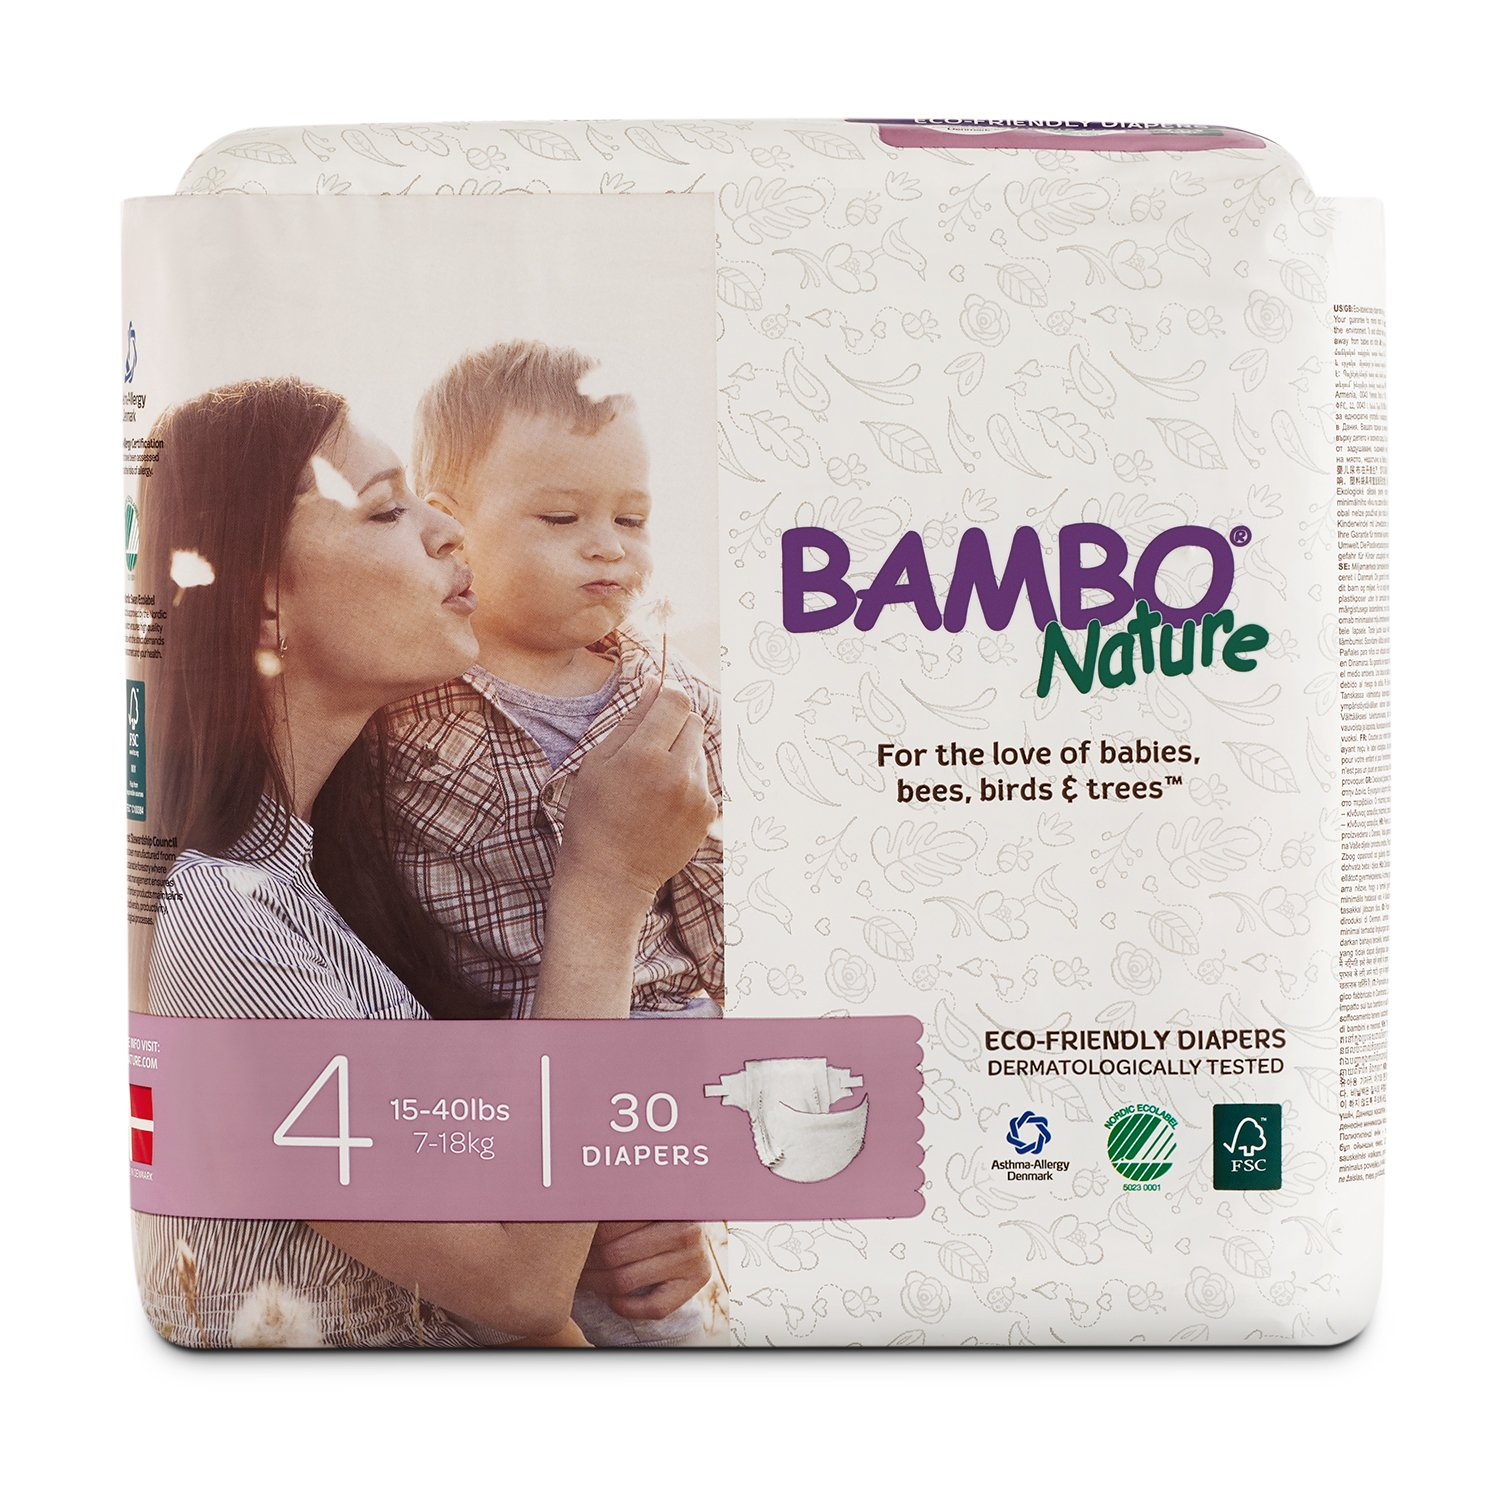 Bambo Nature Premium Baby Diapers (Choose Size and Count)